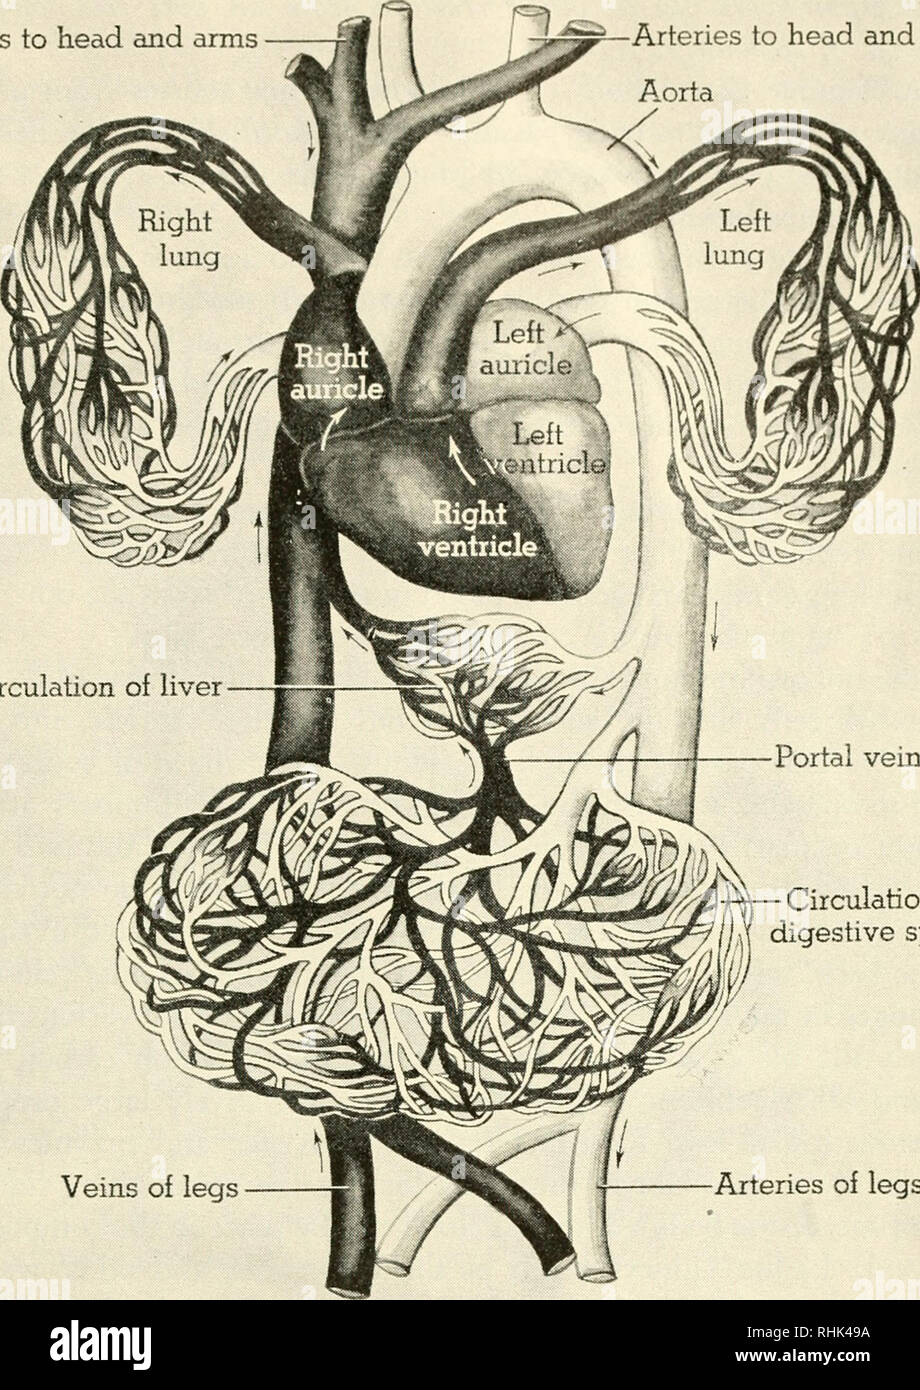 medium resolution of veins to head and arms arteries to head and arms aorta circulation of liver portal vein circulation of digestive system veins of legs arteries of